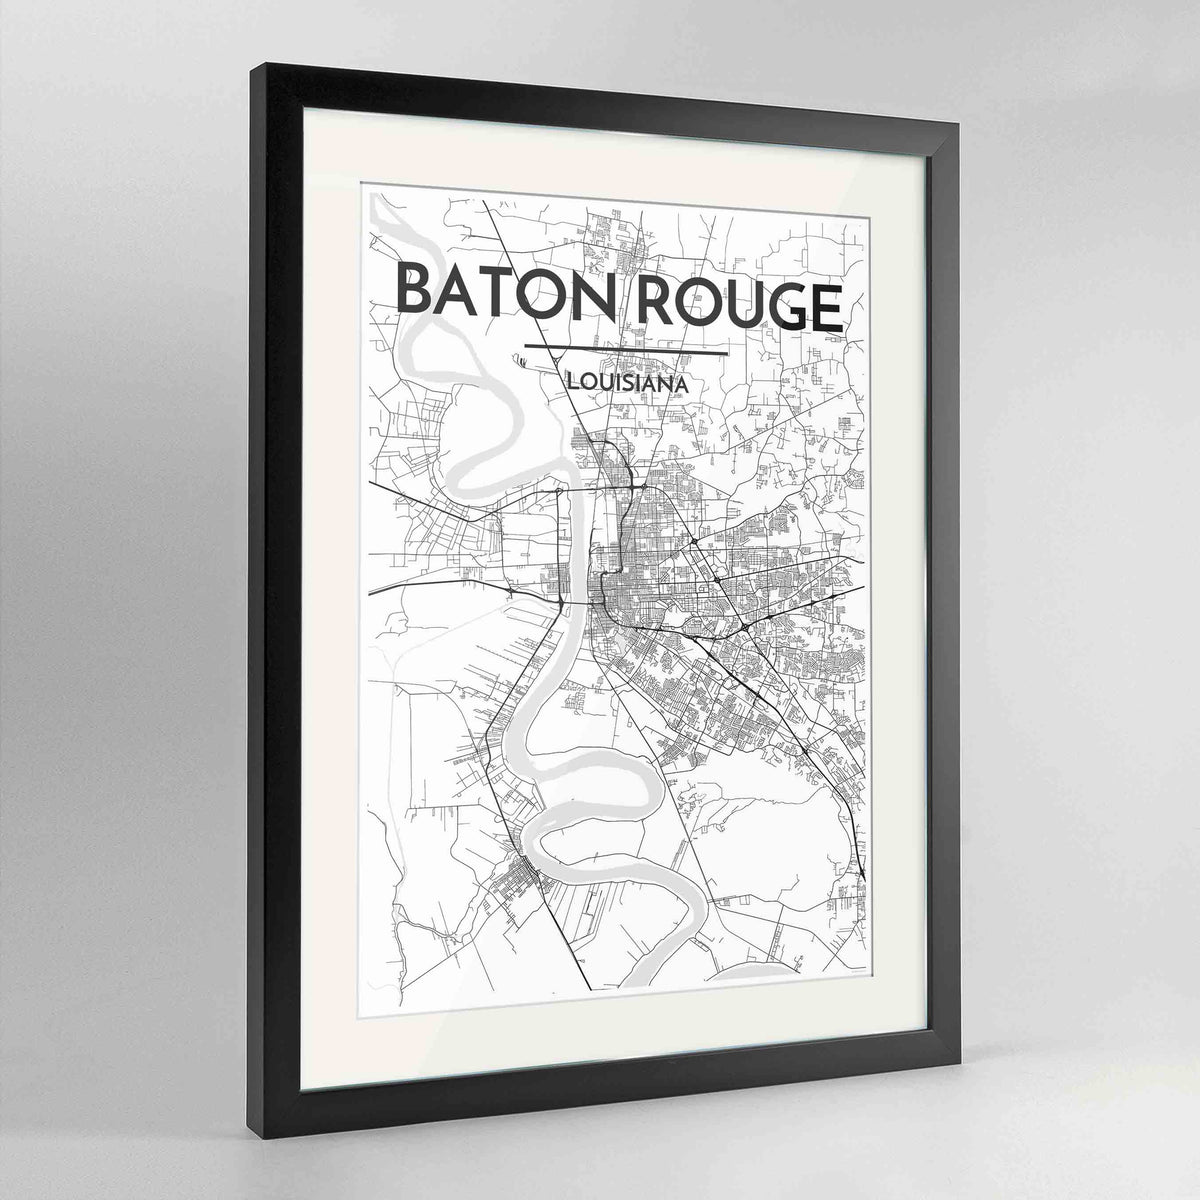 "Framed Baton Rouge Map Art Print 24x36"" Contemporary Black frame Point Two Design Group"